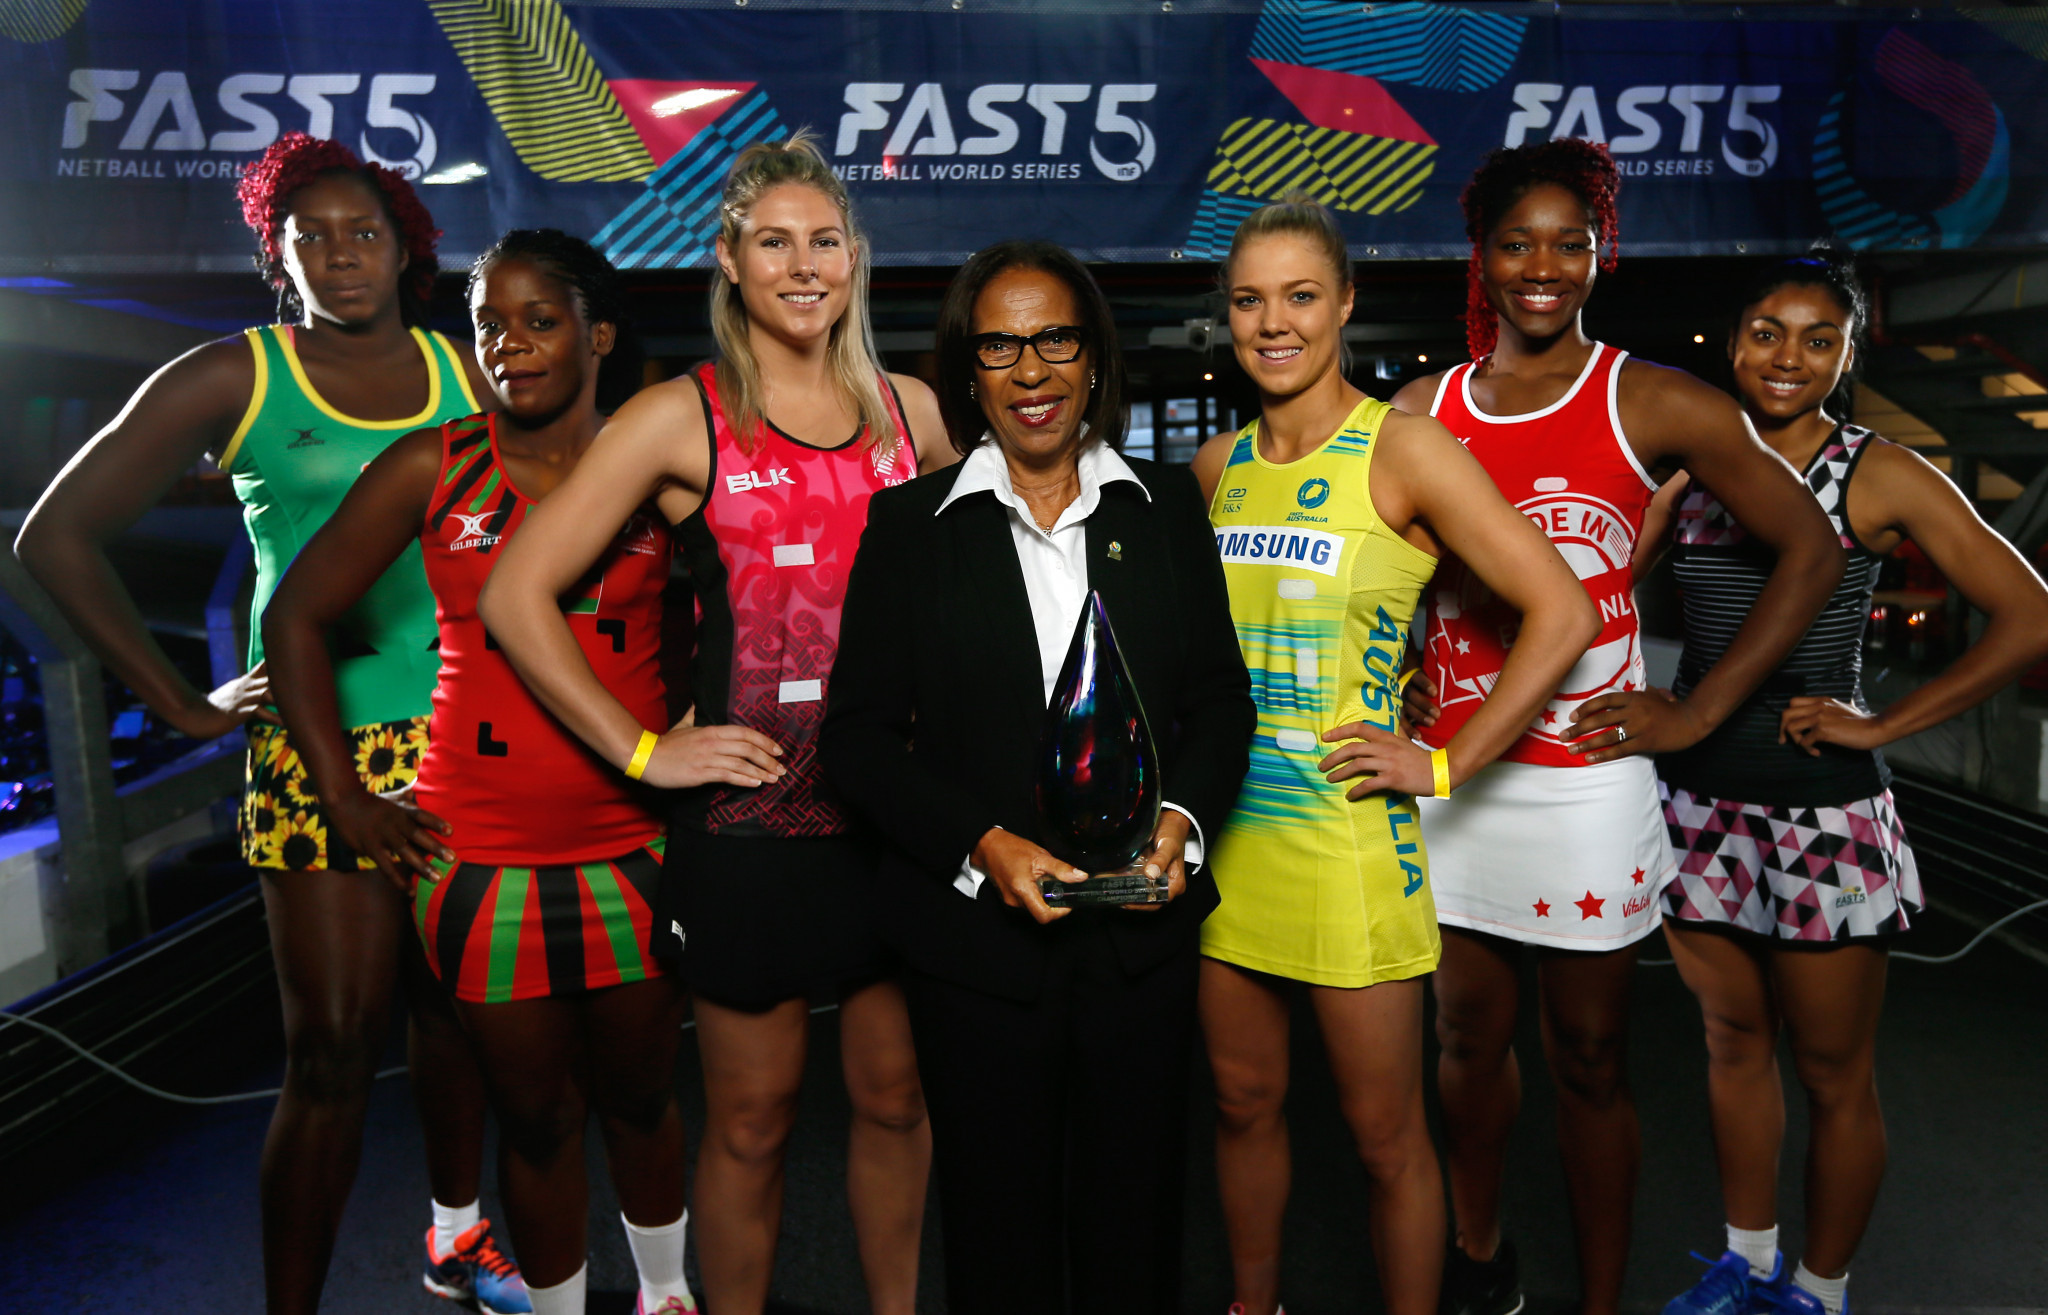 New Zealand chase fifth successive Fast5 Netball World Series win